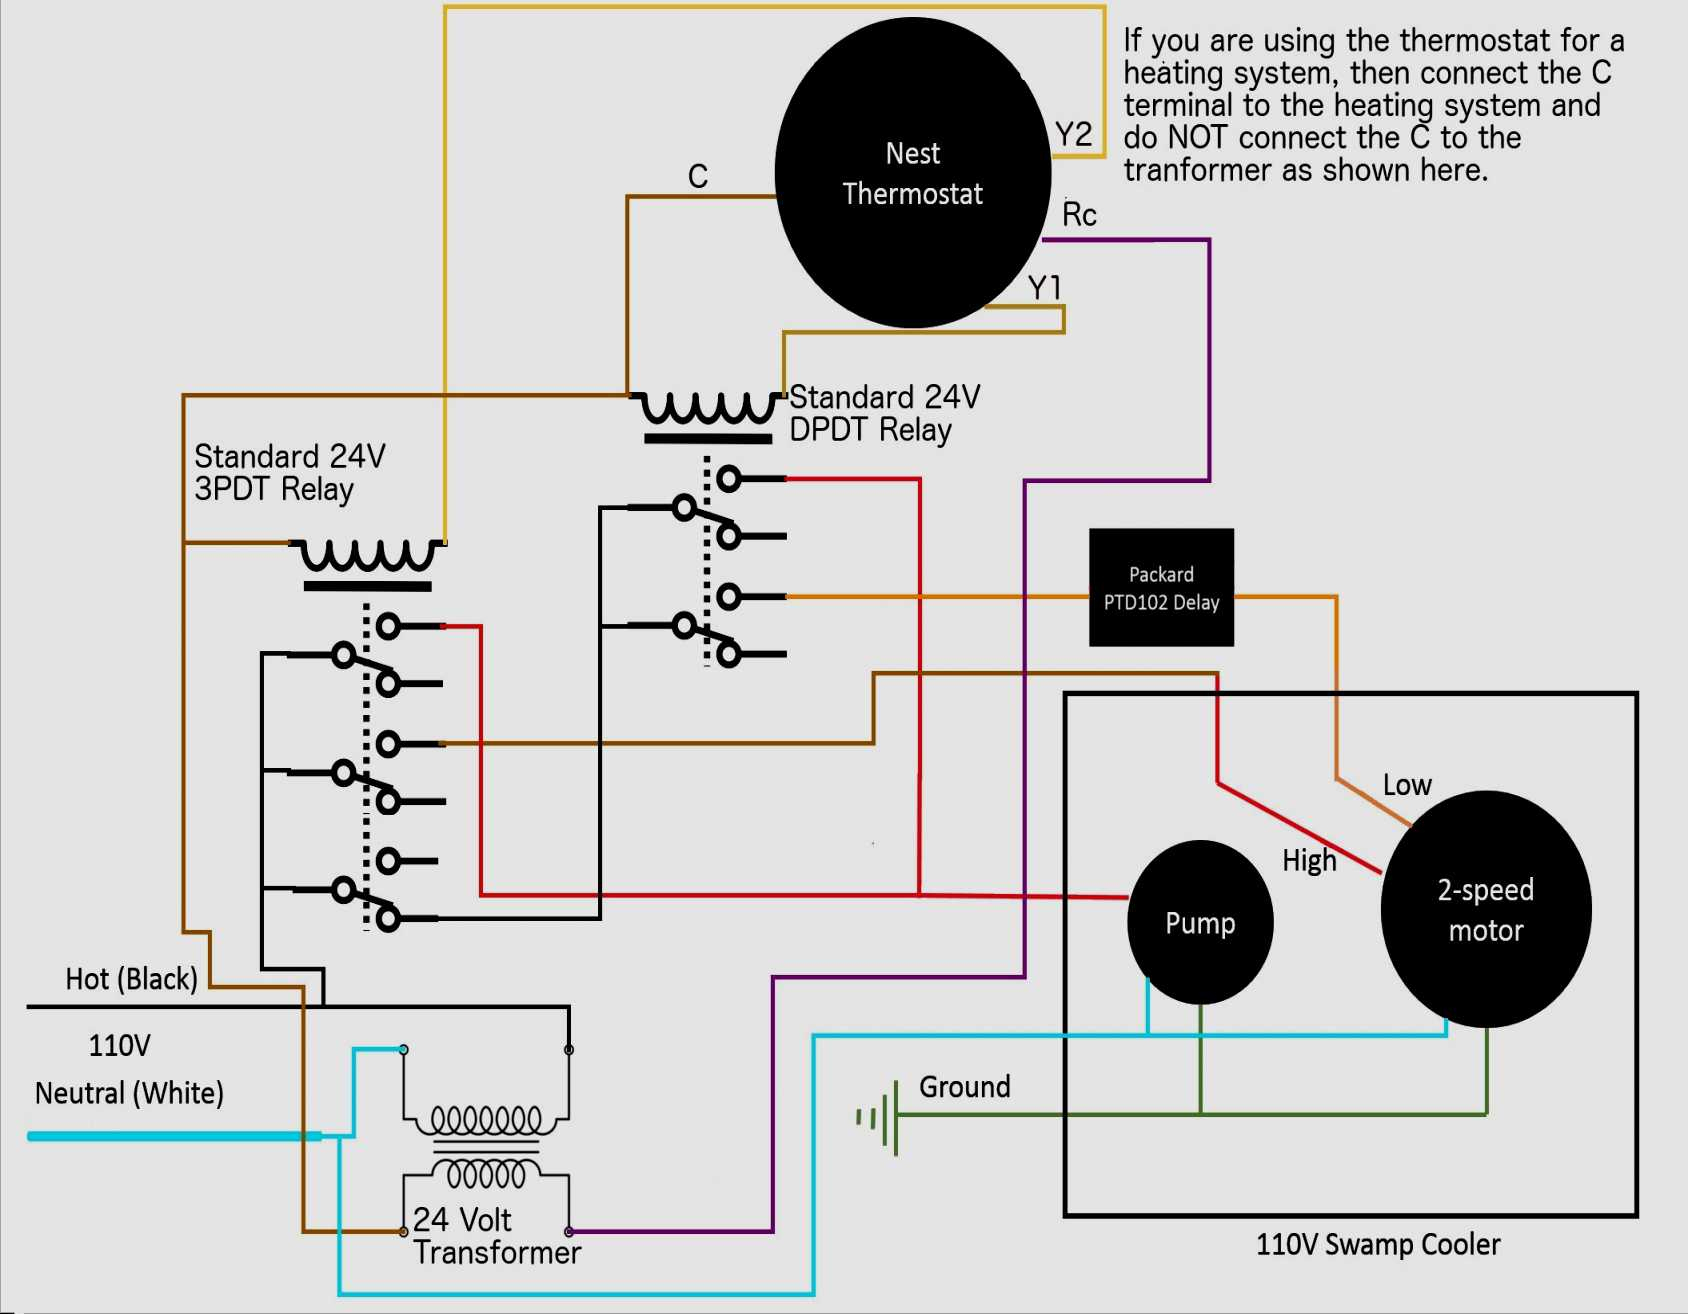 Honeywell Humidifier Wiring Diagram With Nest - Wiring Diagram Essig - Nest Thermostat Humidifier Wiring Diagram